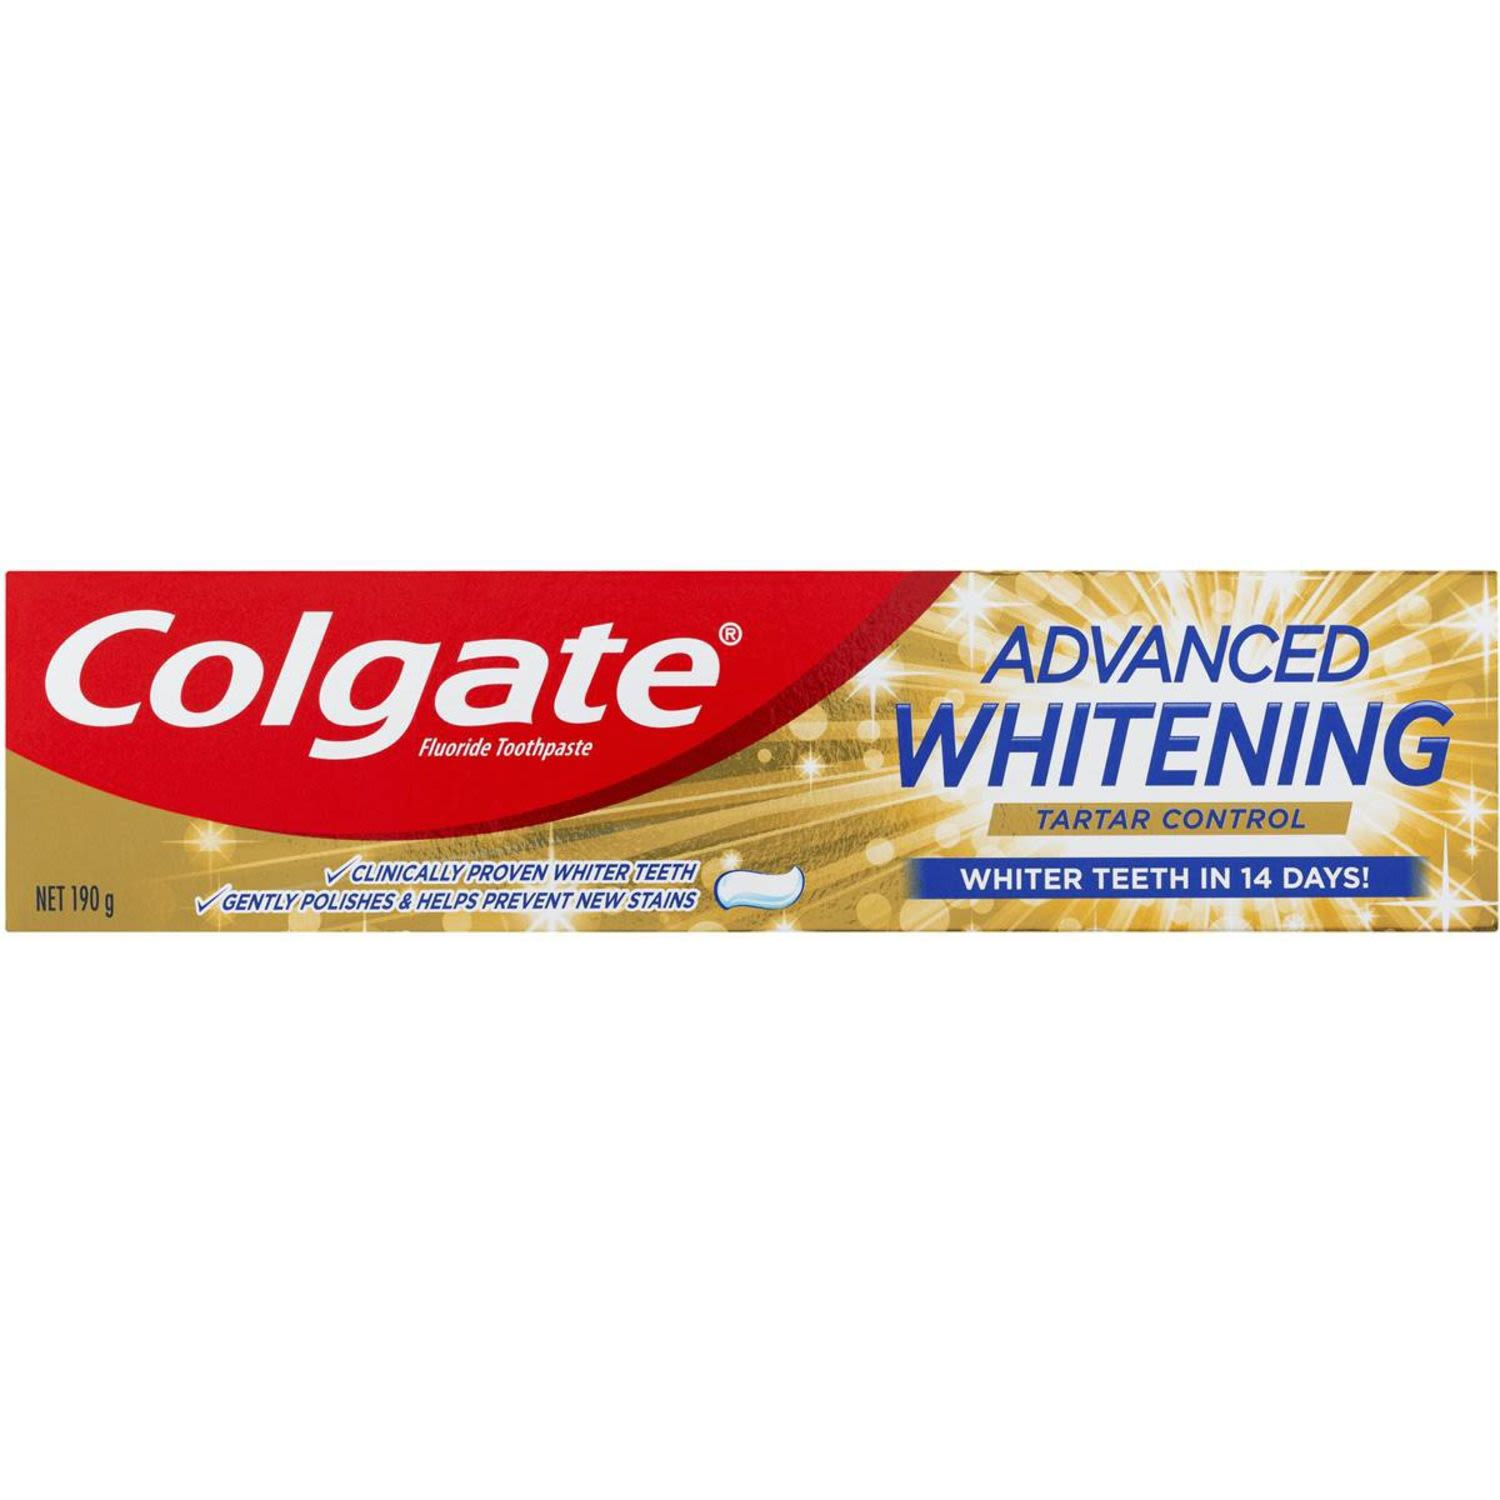 Colgate Advanced Whitening Tartar Control Whitening Toothpaste with Microcleansing Crystals, 190 Gram